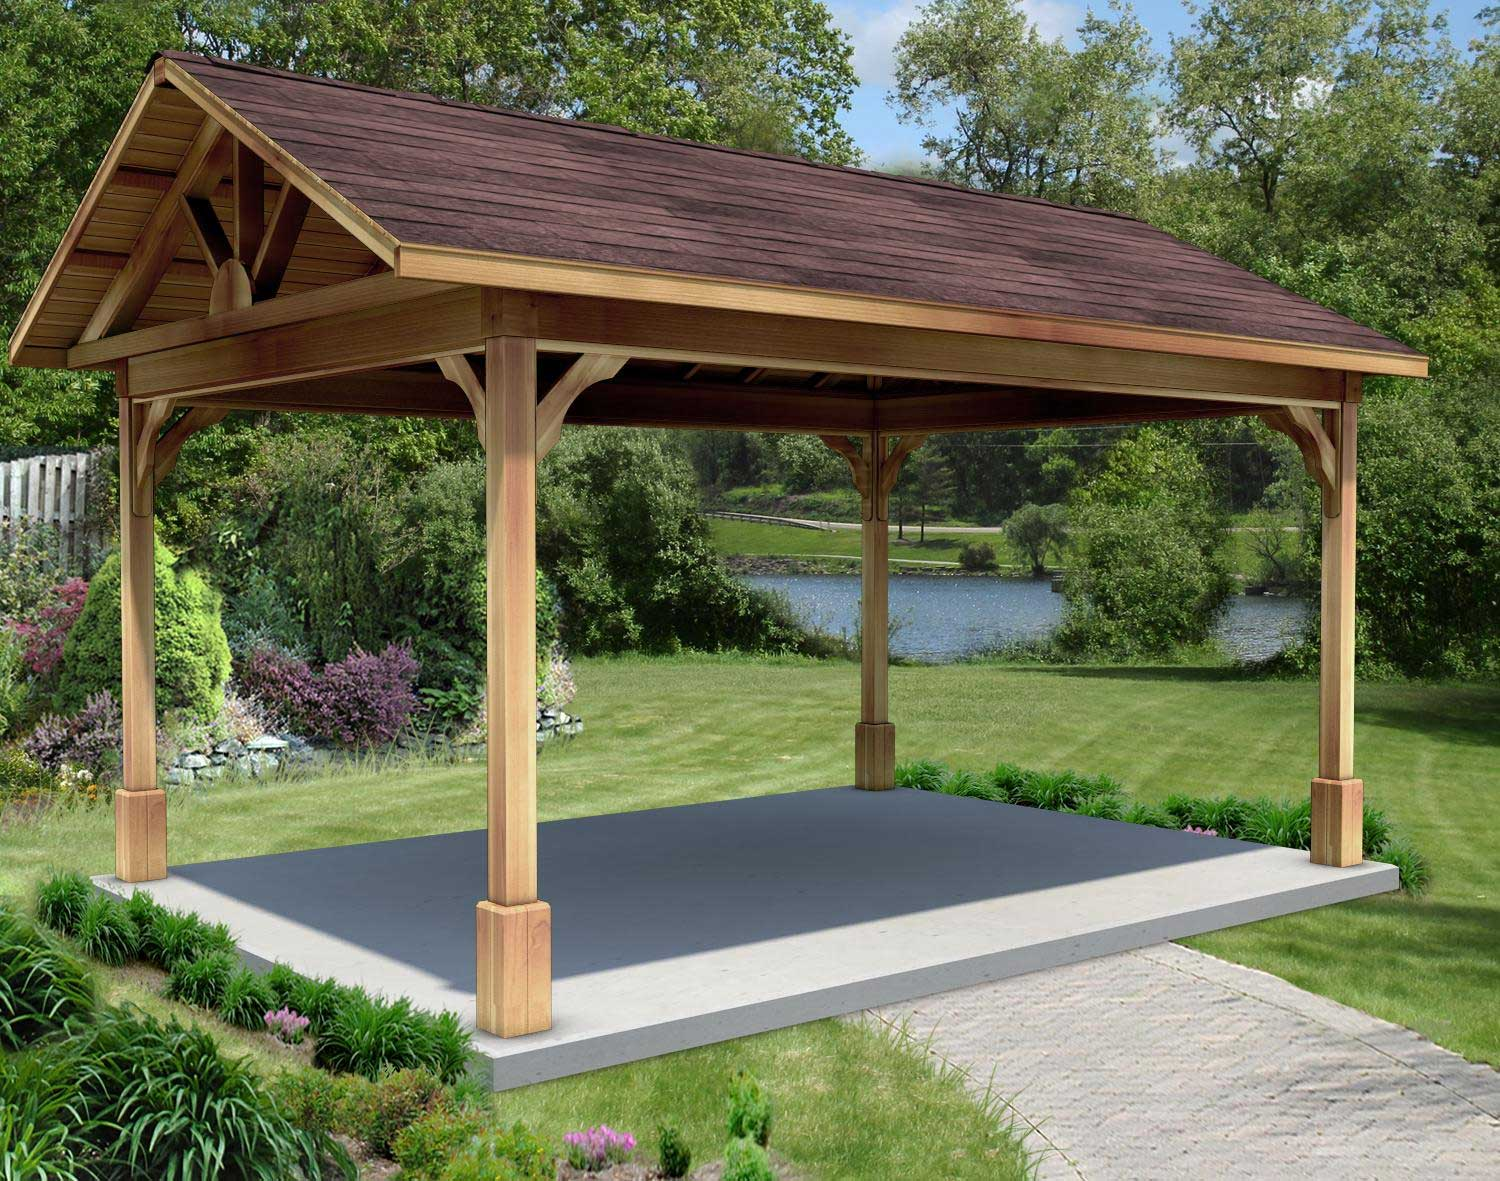 Red cedar gable roof open rectangle gazebos with 6 12 roof - Gazebo da giardino obi ...